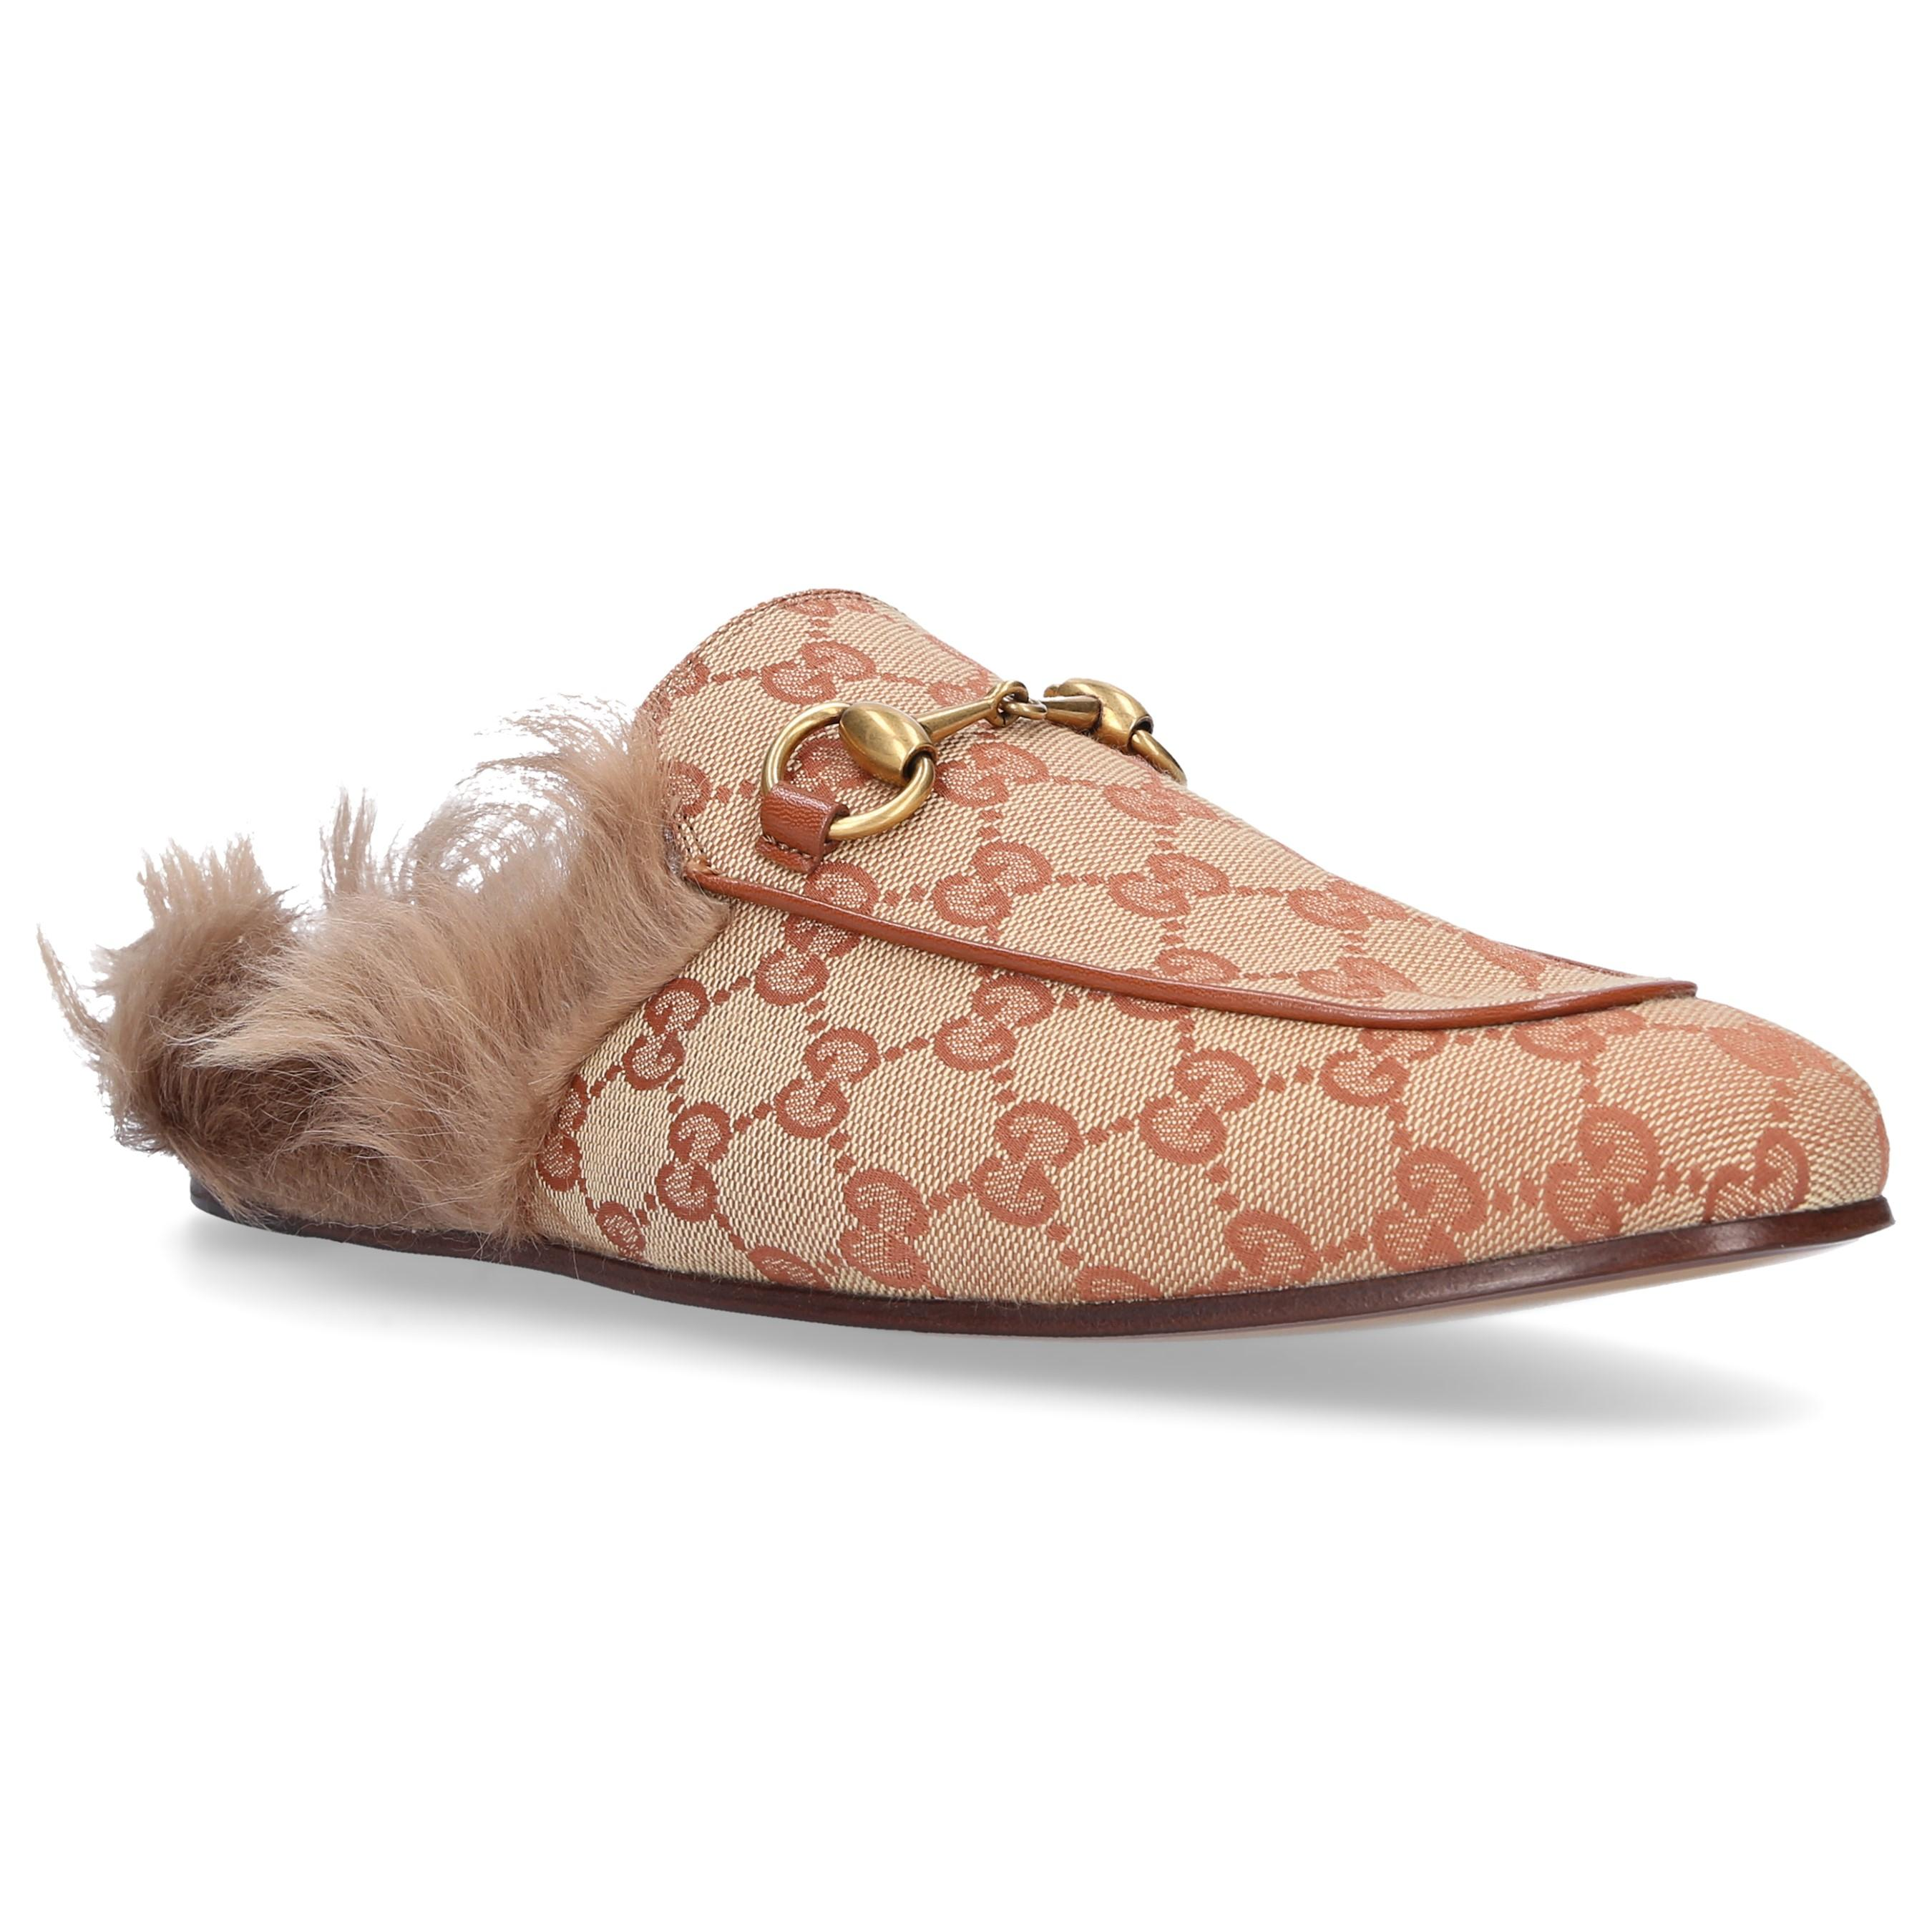 a0c35f14777 Gucci - Natural Princetown Canvas Slippers for Men - Lyst. View fullscreen